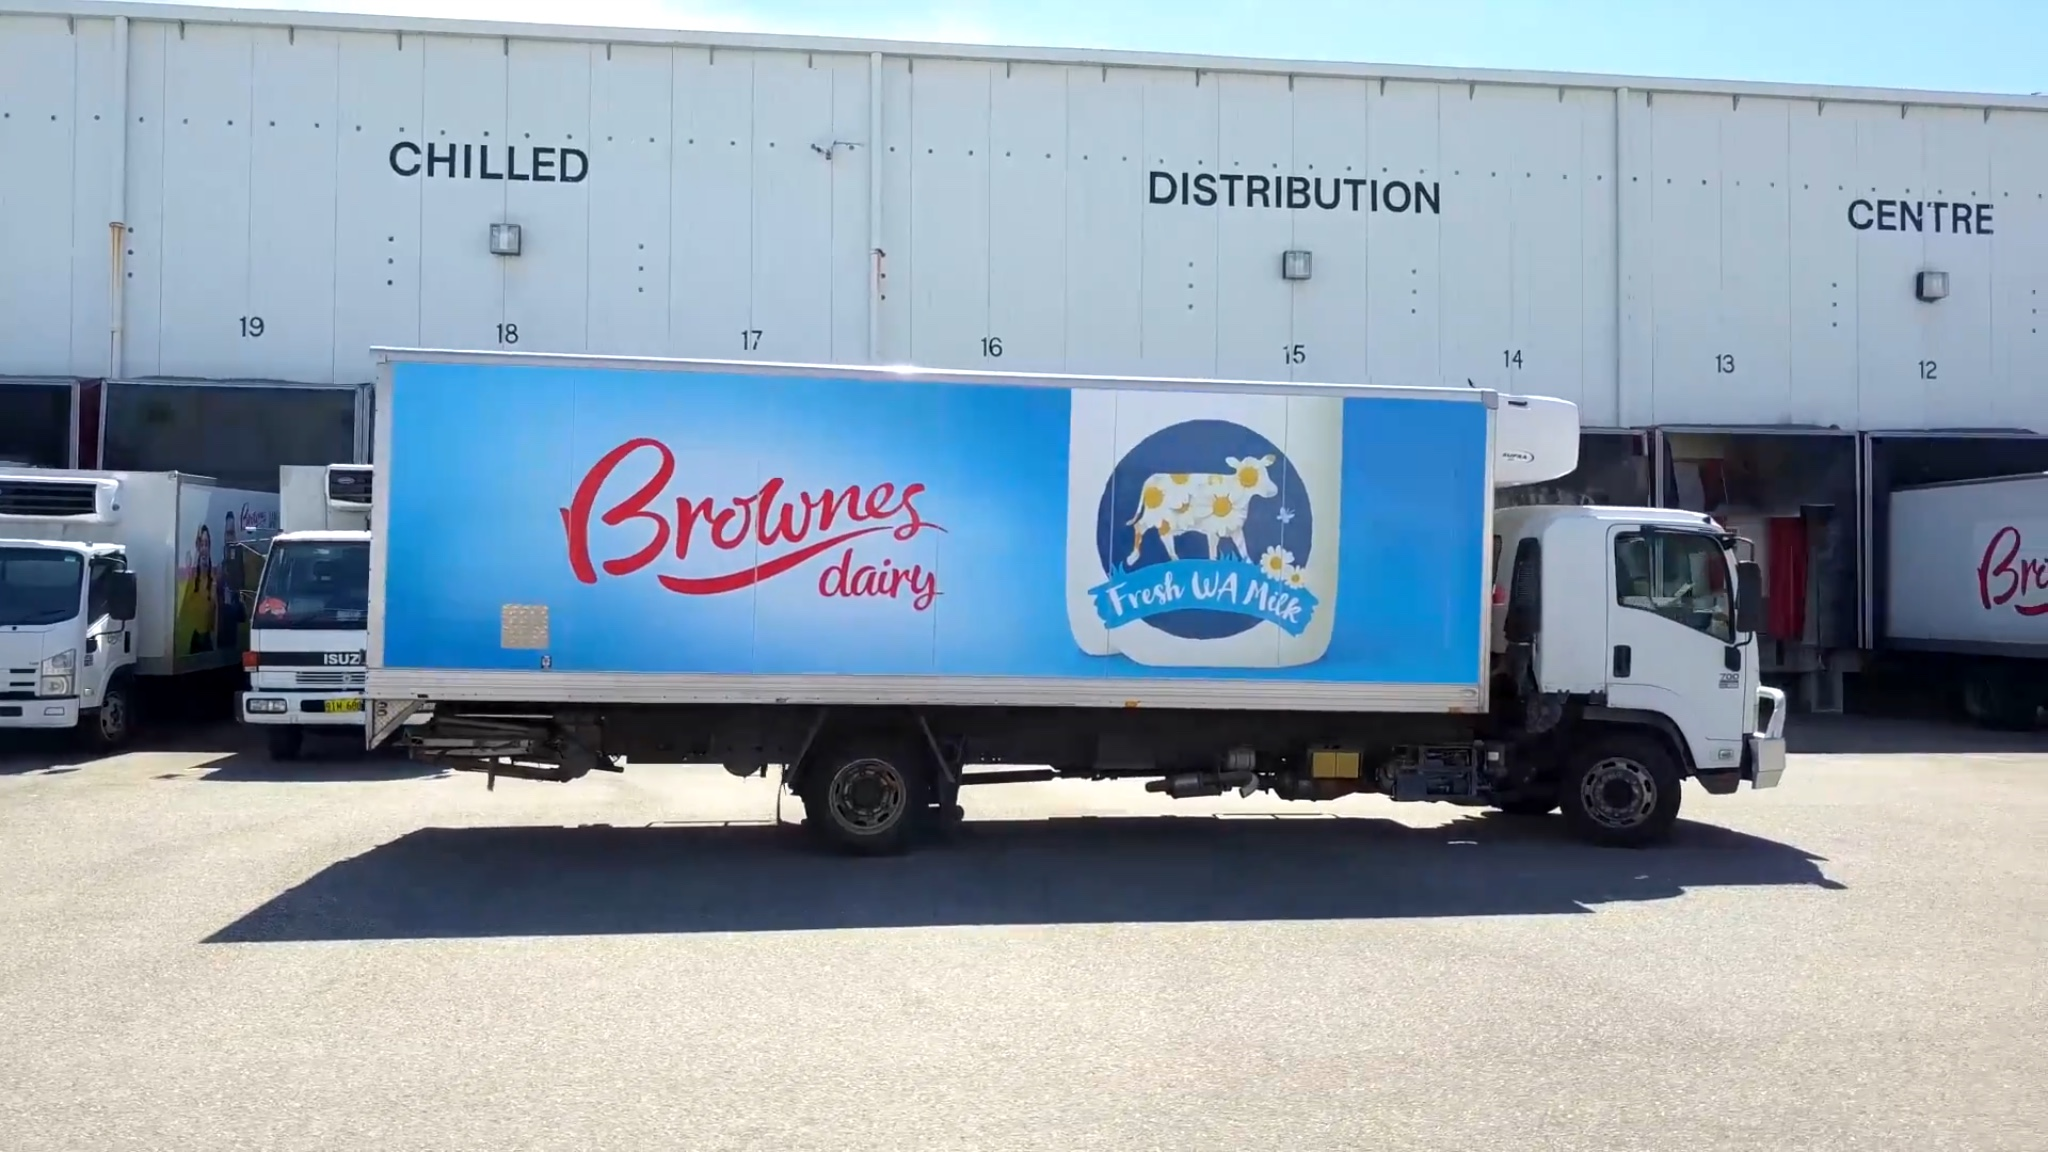 I Drive a Truck for Brownes Dairy!